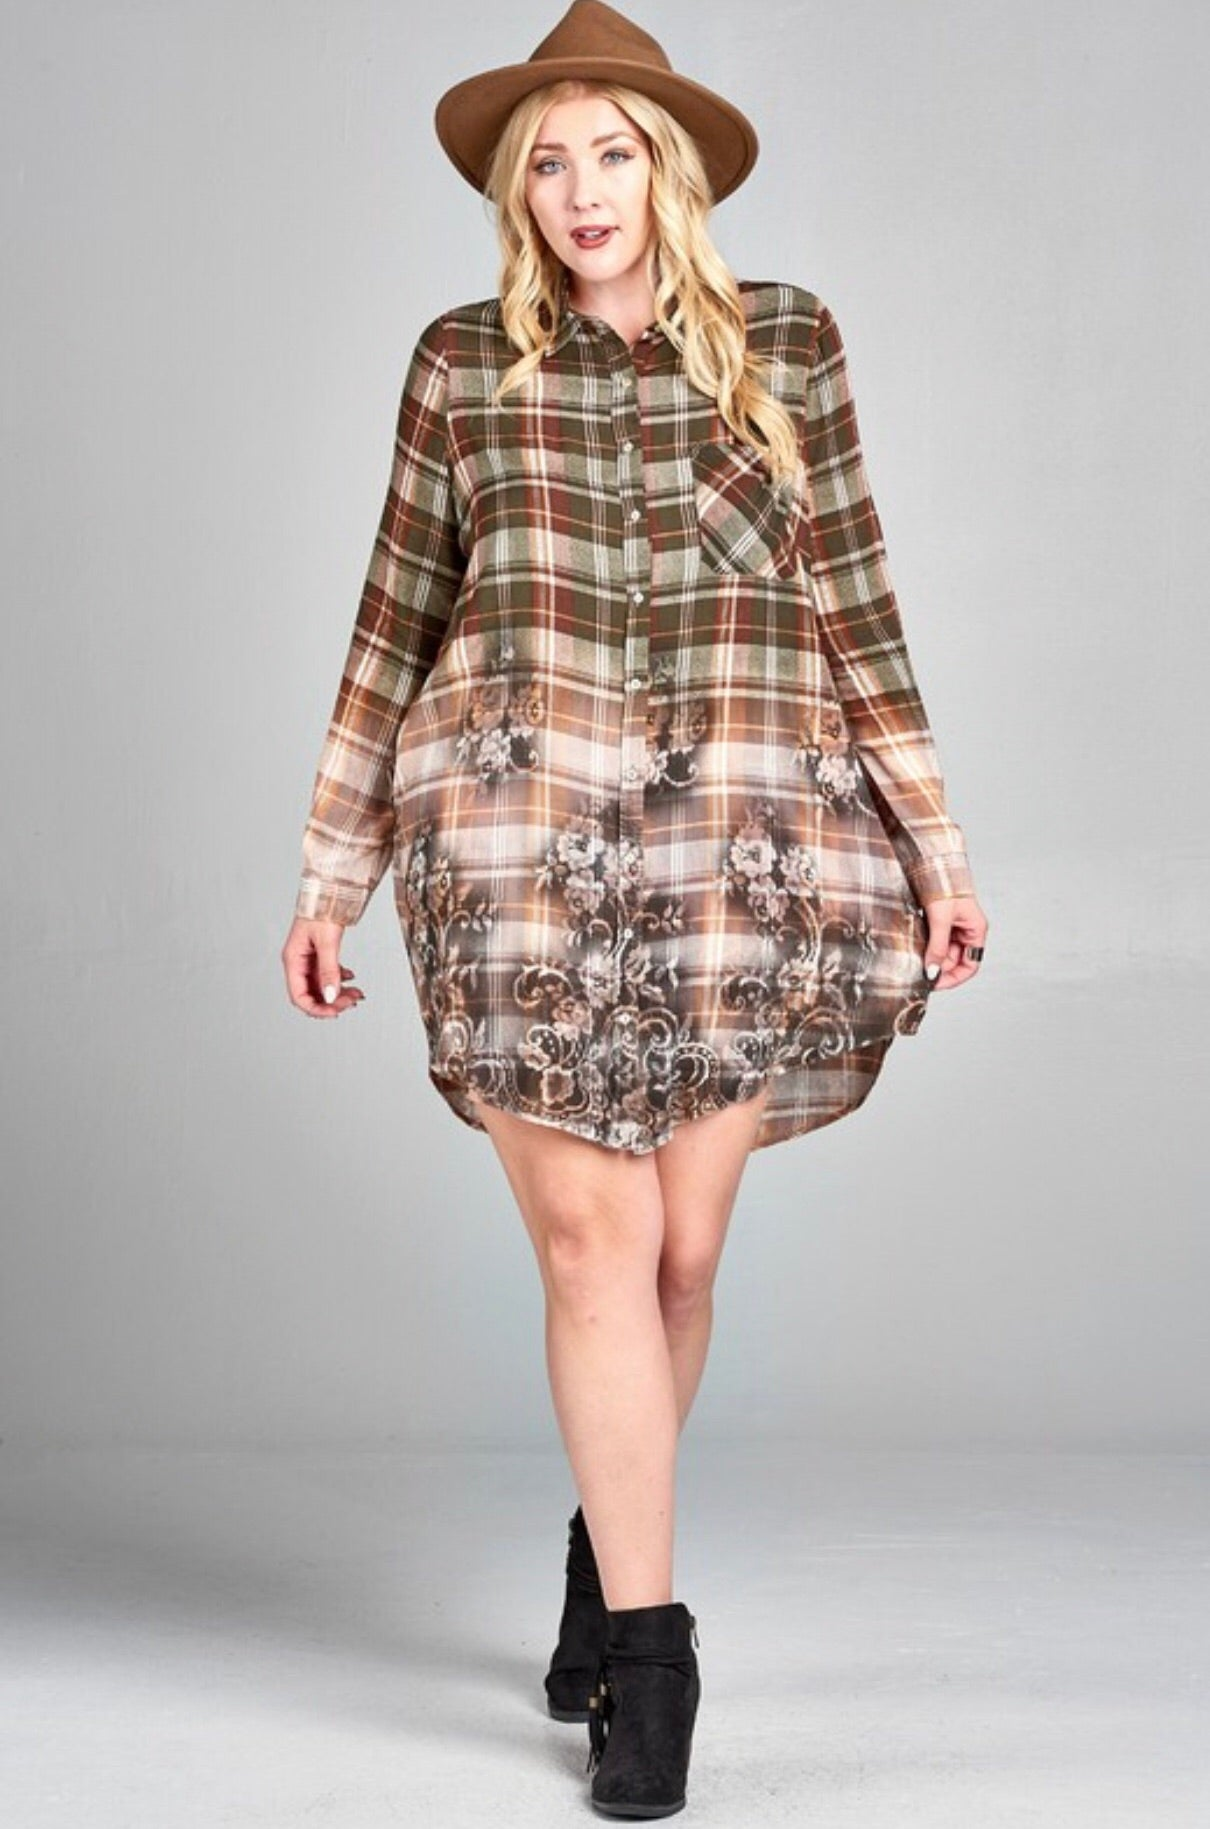 Floral Fling Plaid Dress